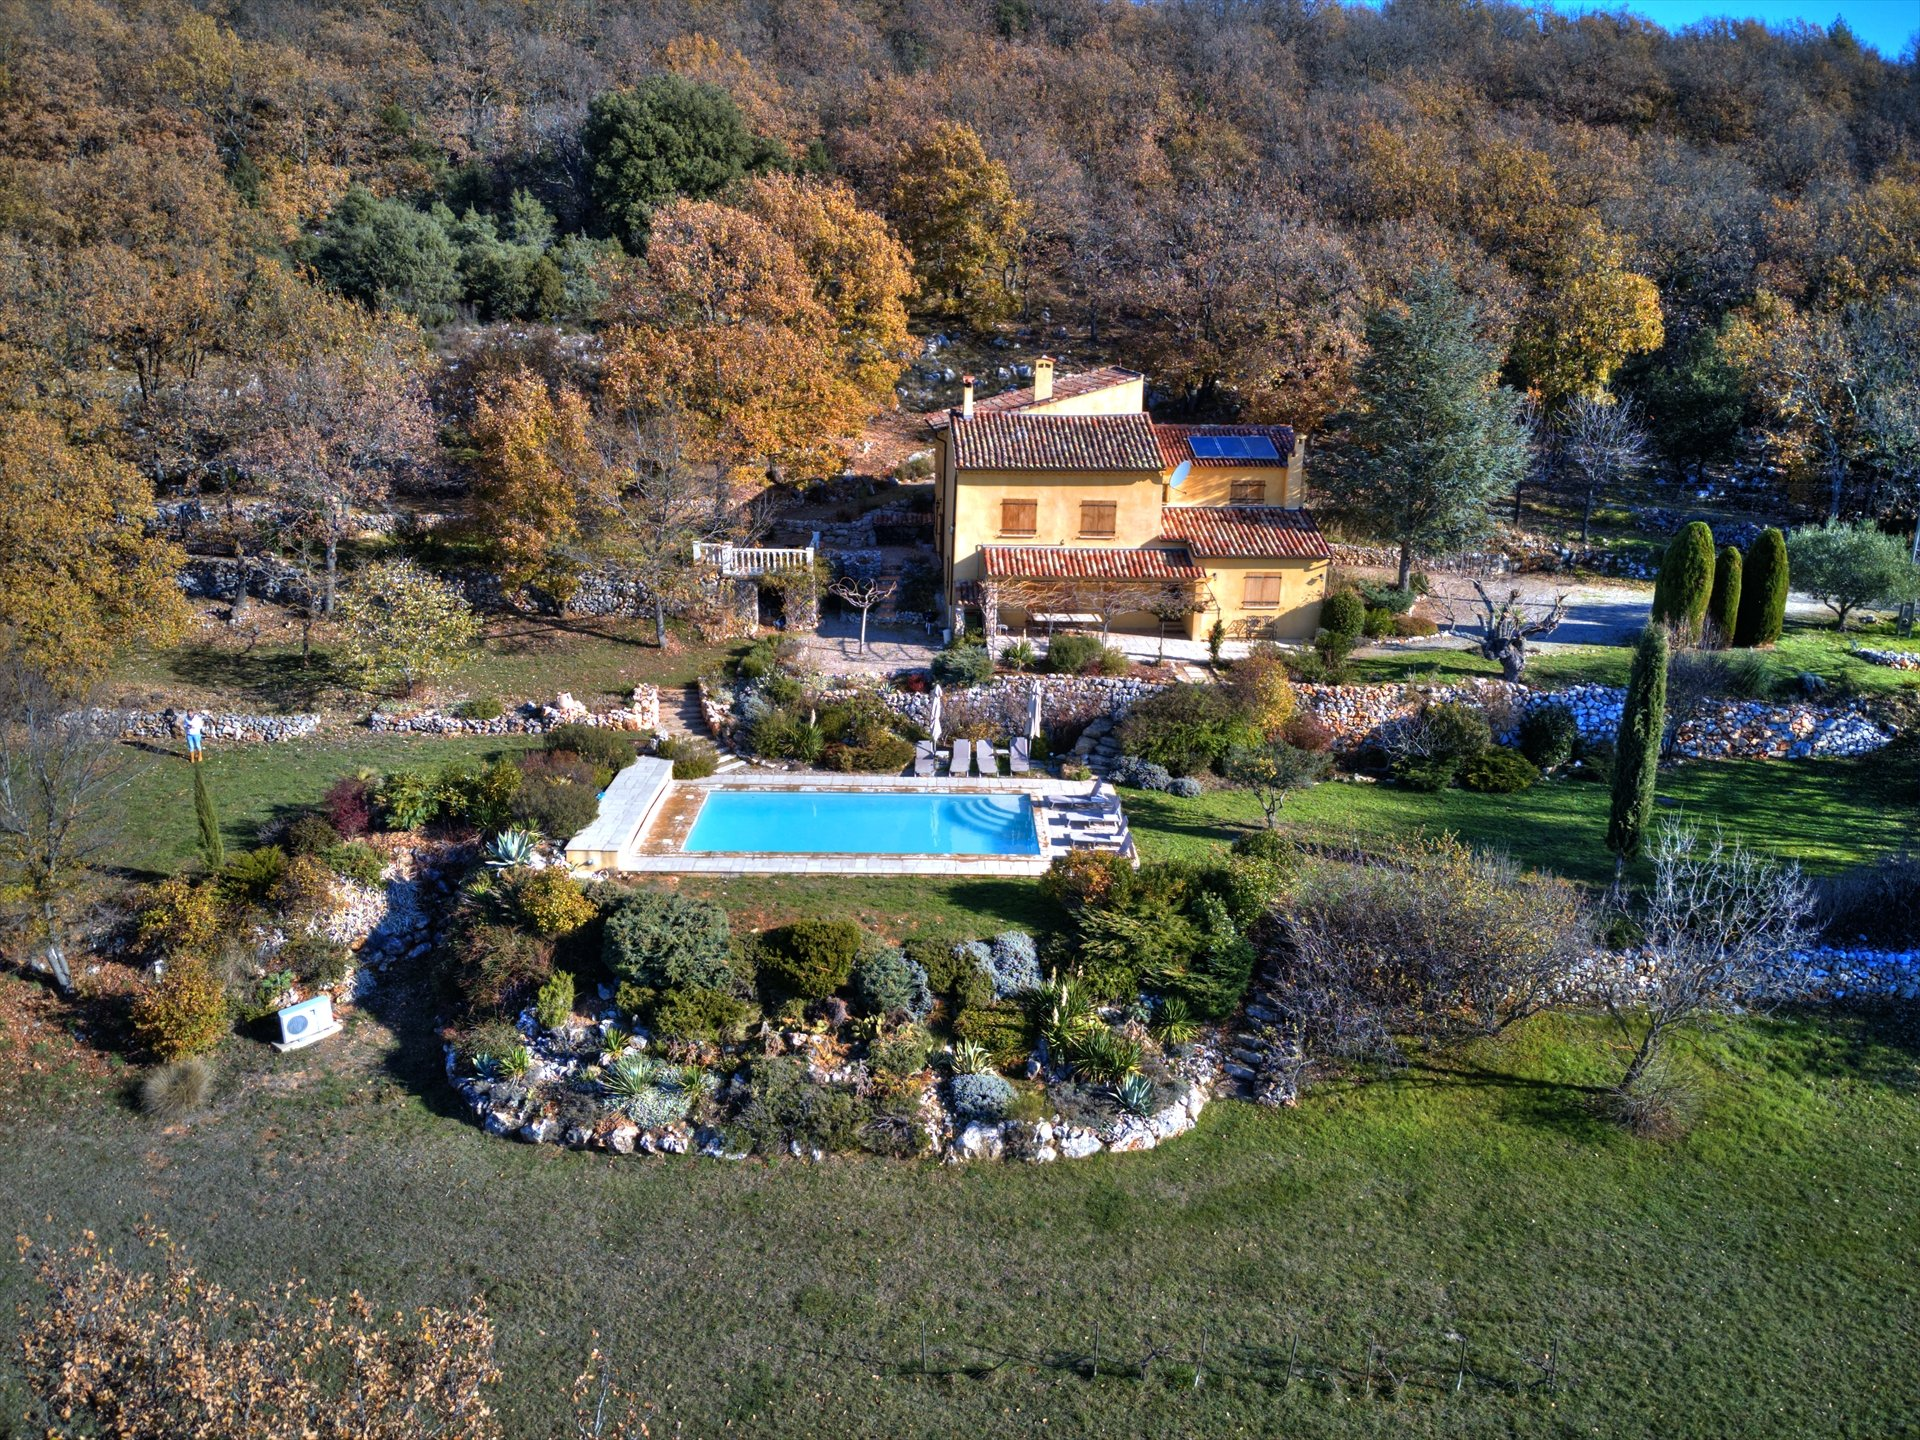 Aerial view of the house with garden